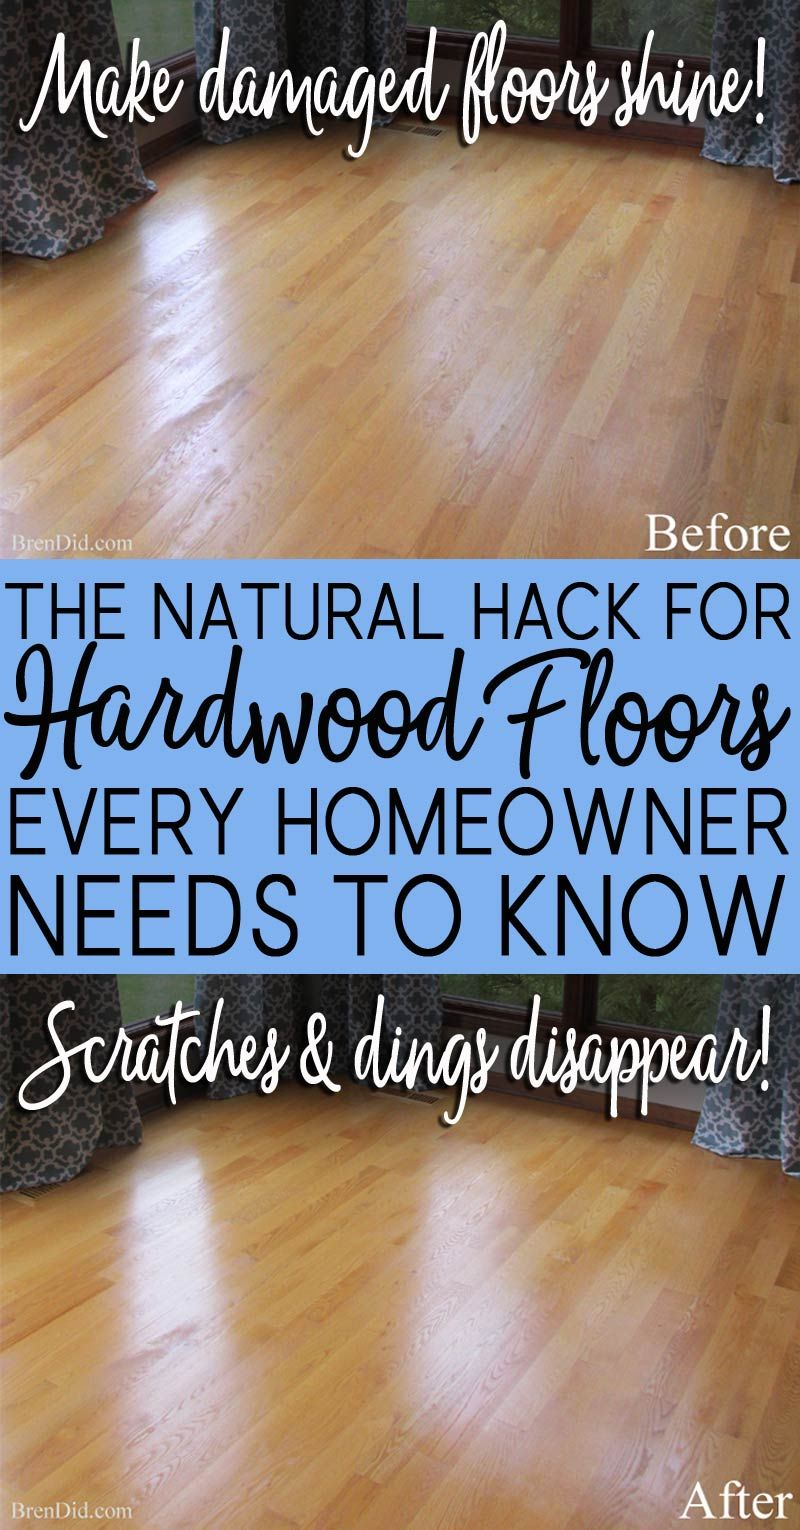 Diy All Natural Hardwood Floor Rer Makes Floors Shine Like New And Eliminates Scratches Scuffs Non Toxic Cleaner Safe For Kids Pets